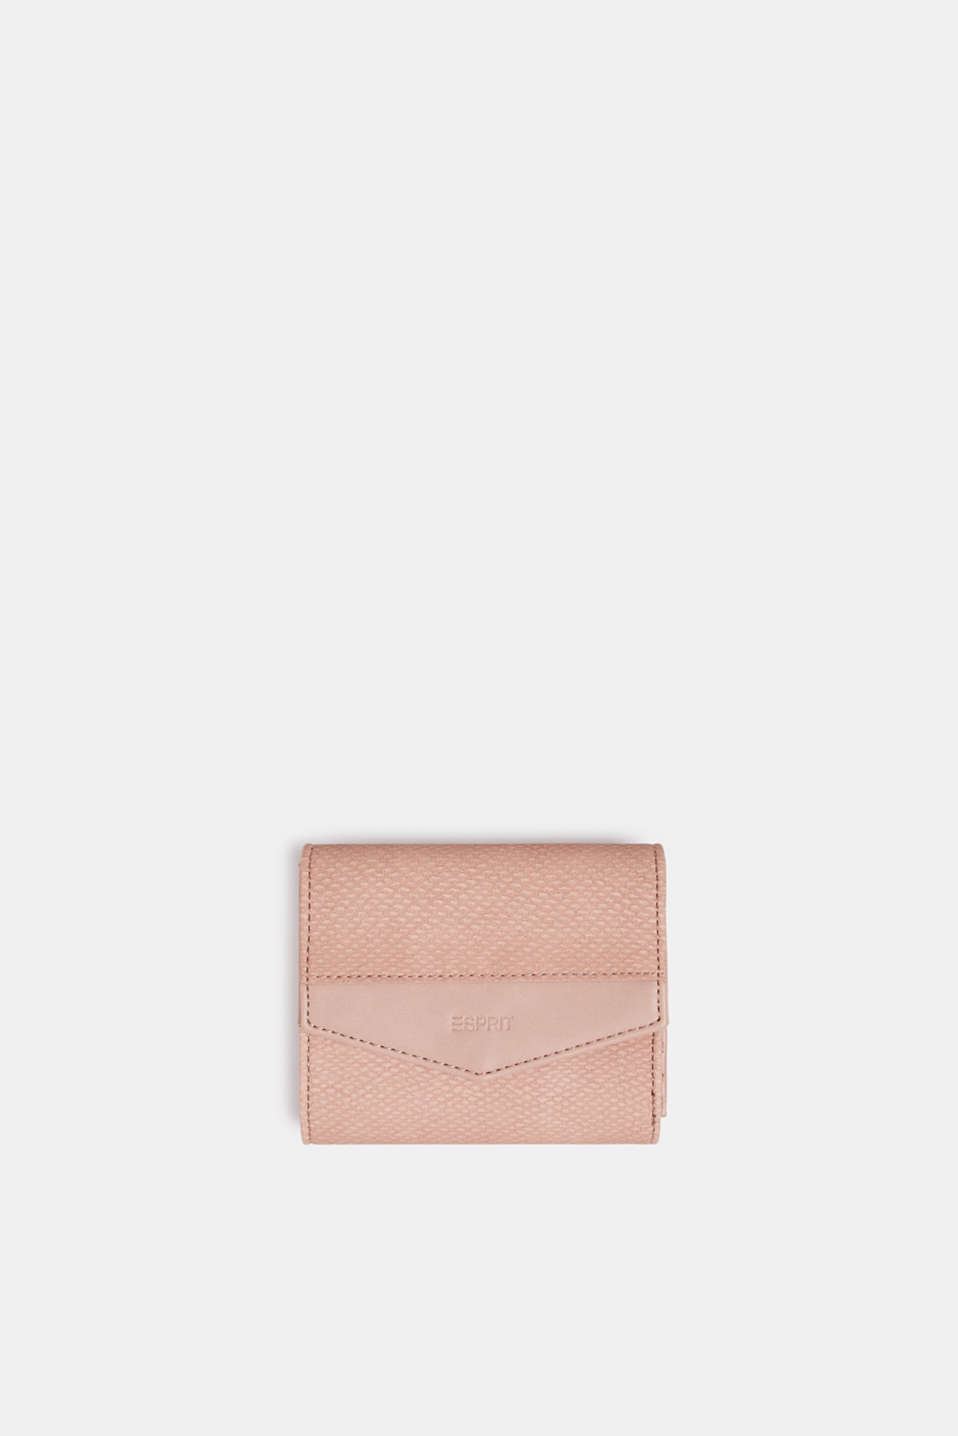 Esprit - Compact faux leather wallet